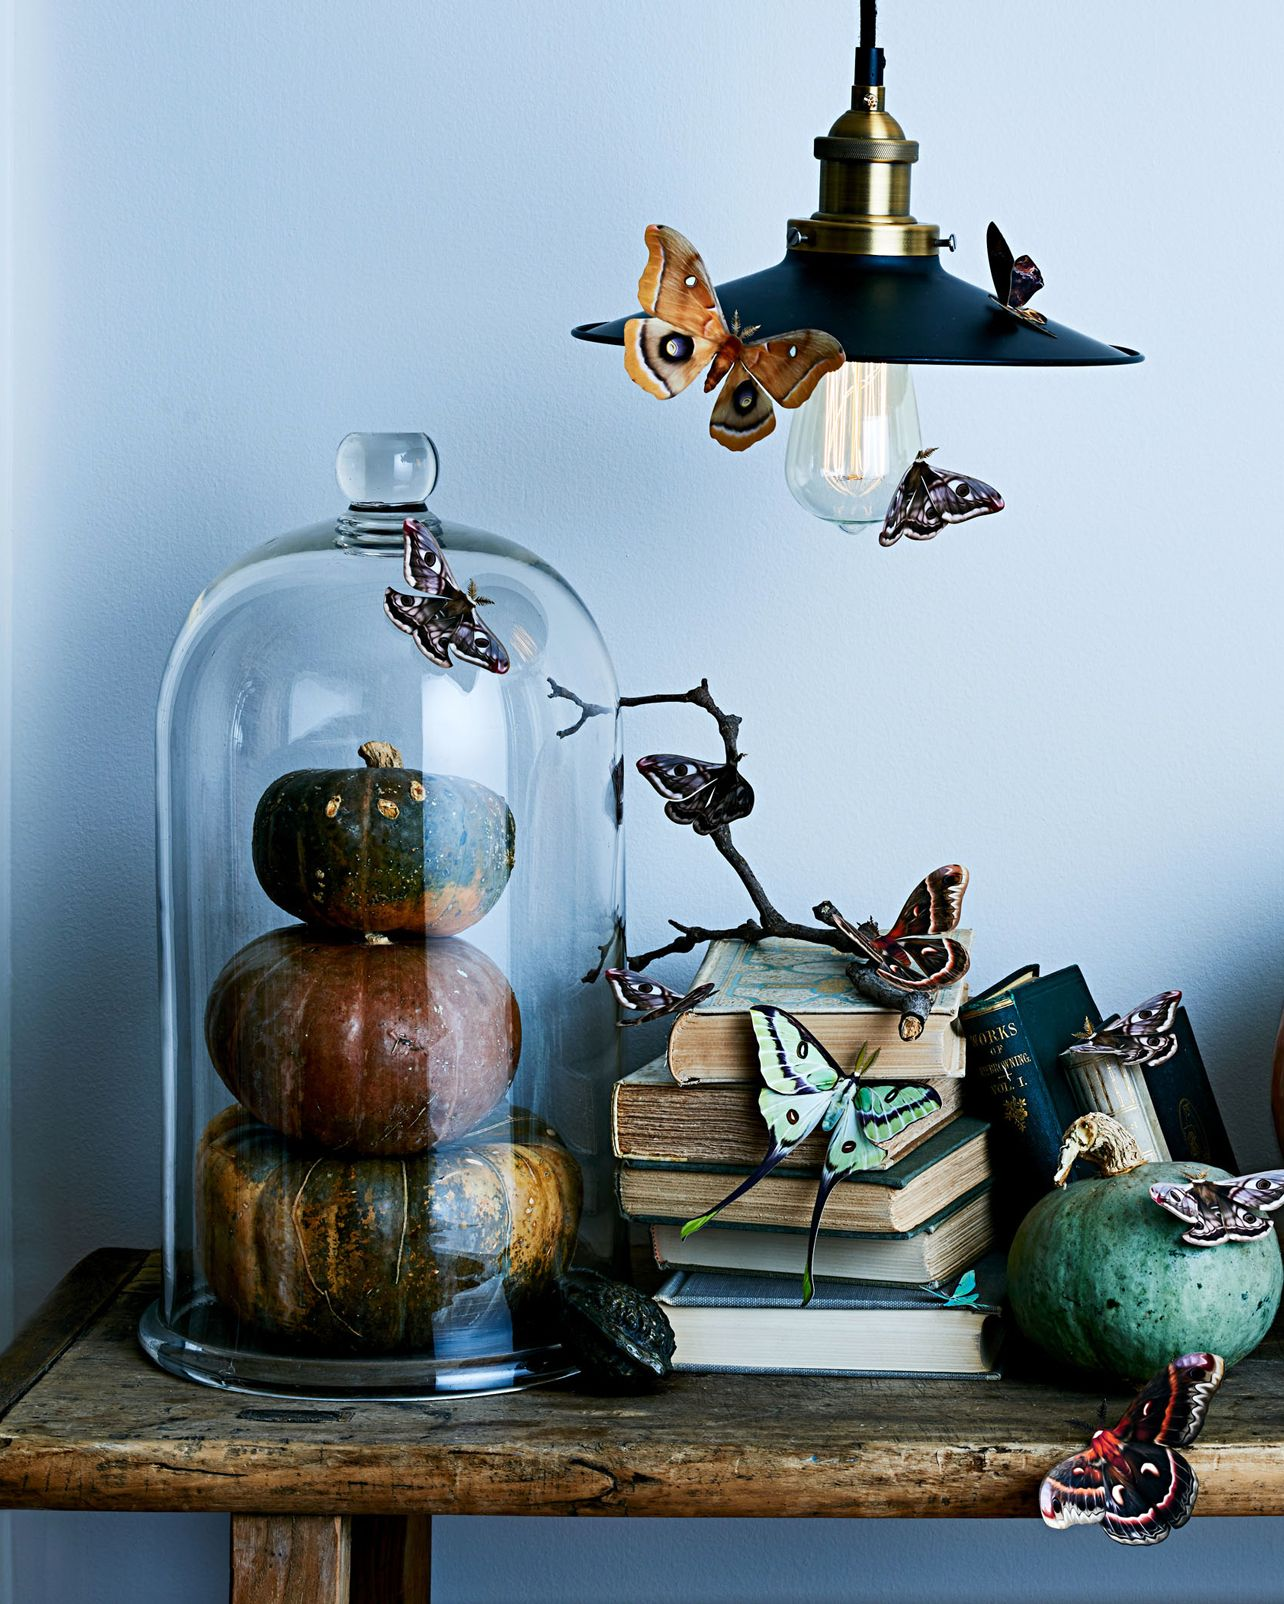 Indoor Halloween Decorations 2020 Haunted Picture 15 of Our Best Fall Harvest Decorating Ideas for Your Home